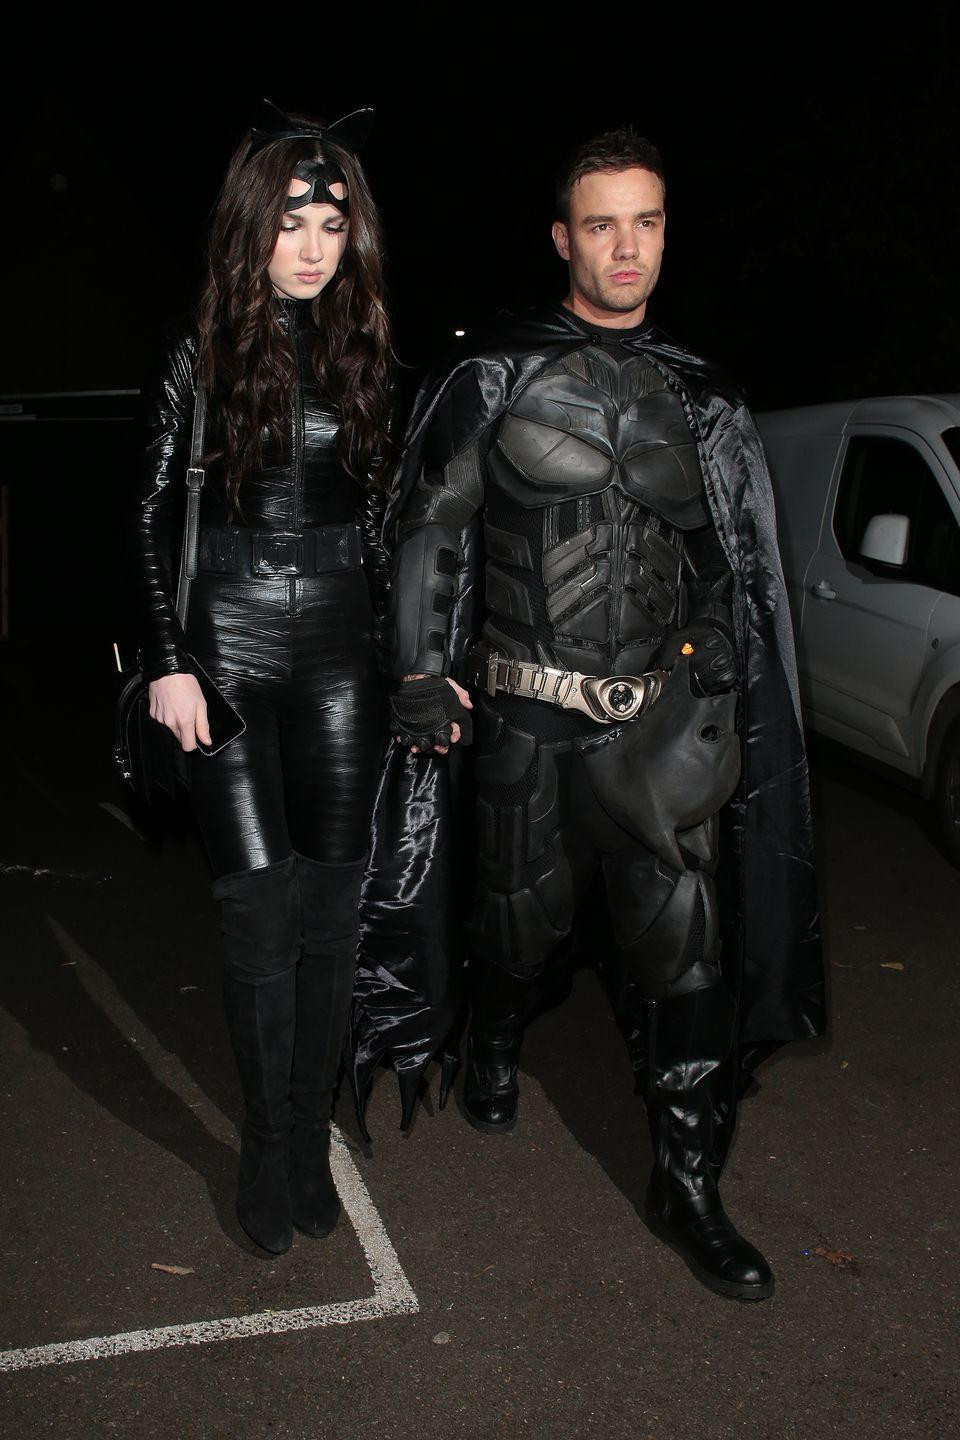 <p>Singer Liam Payne and his model fiancee Maya Henry put on head-to-toe spandex to be Batman and Cat Woman for a 2019 Halloween party.</p>